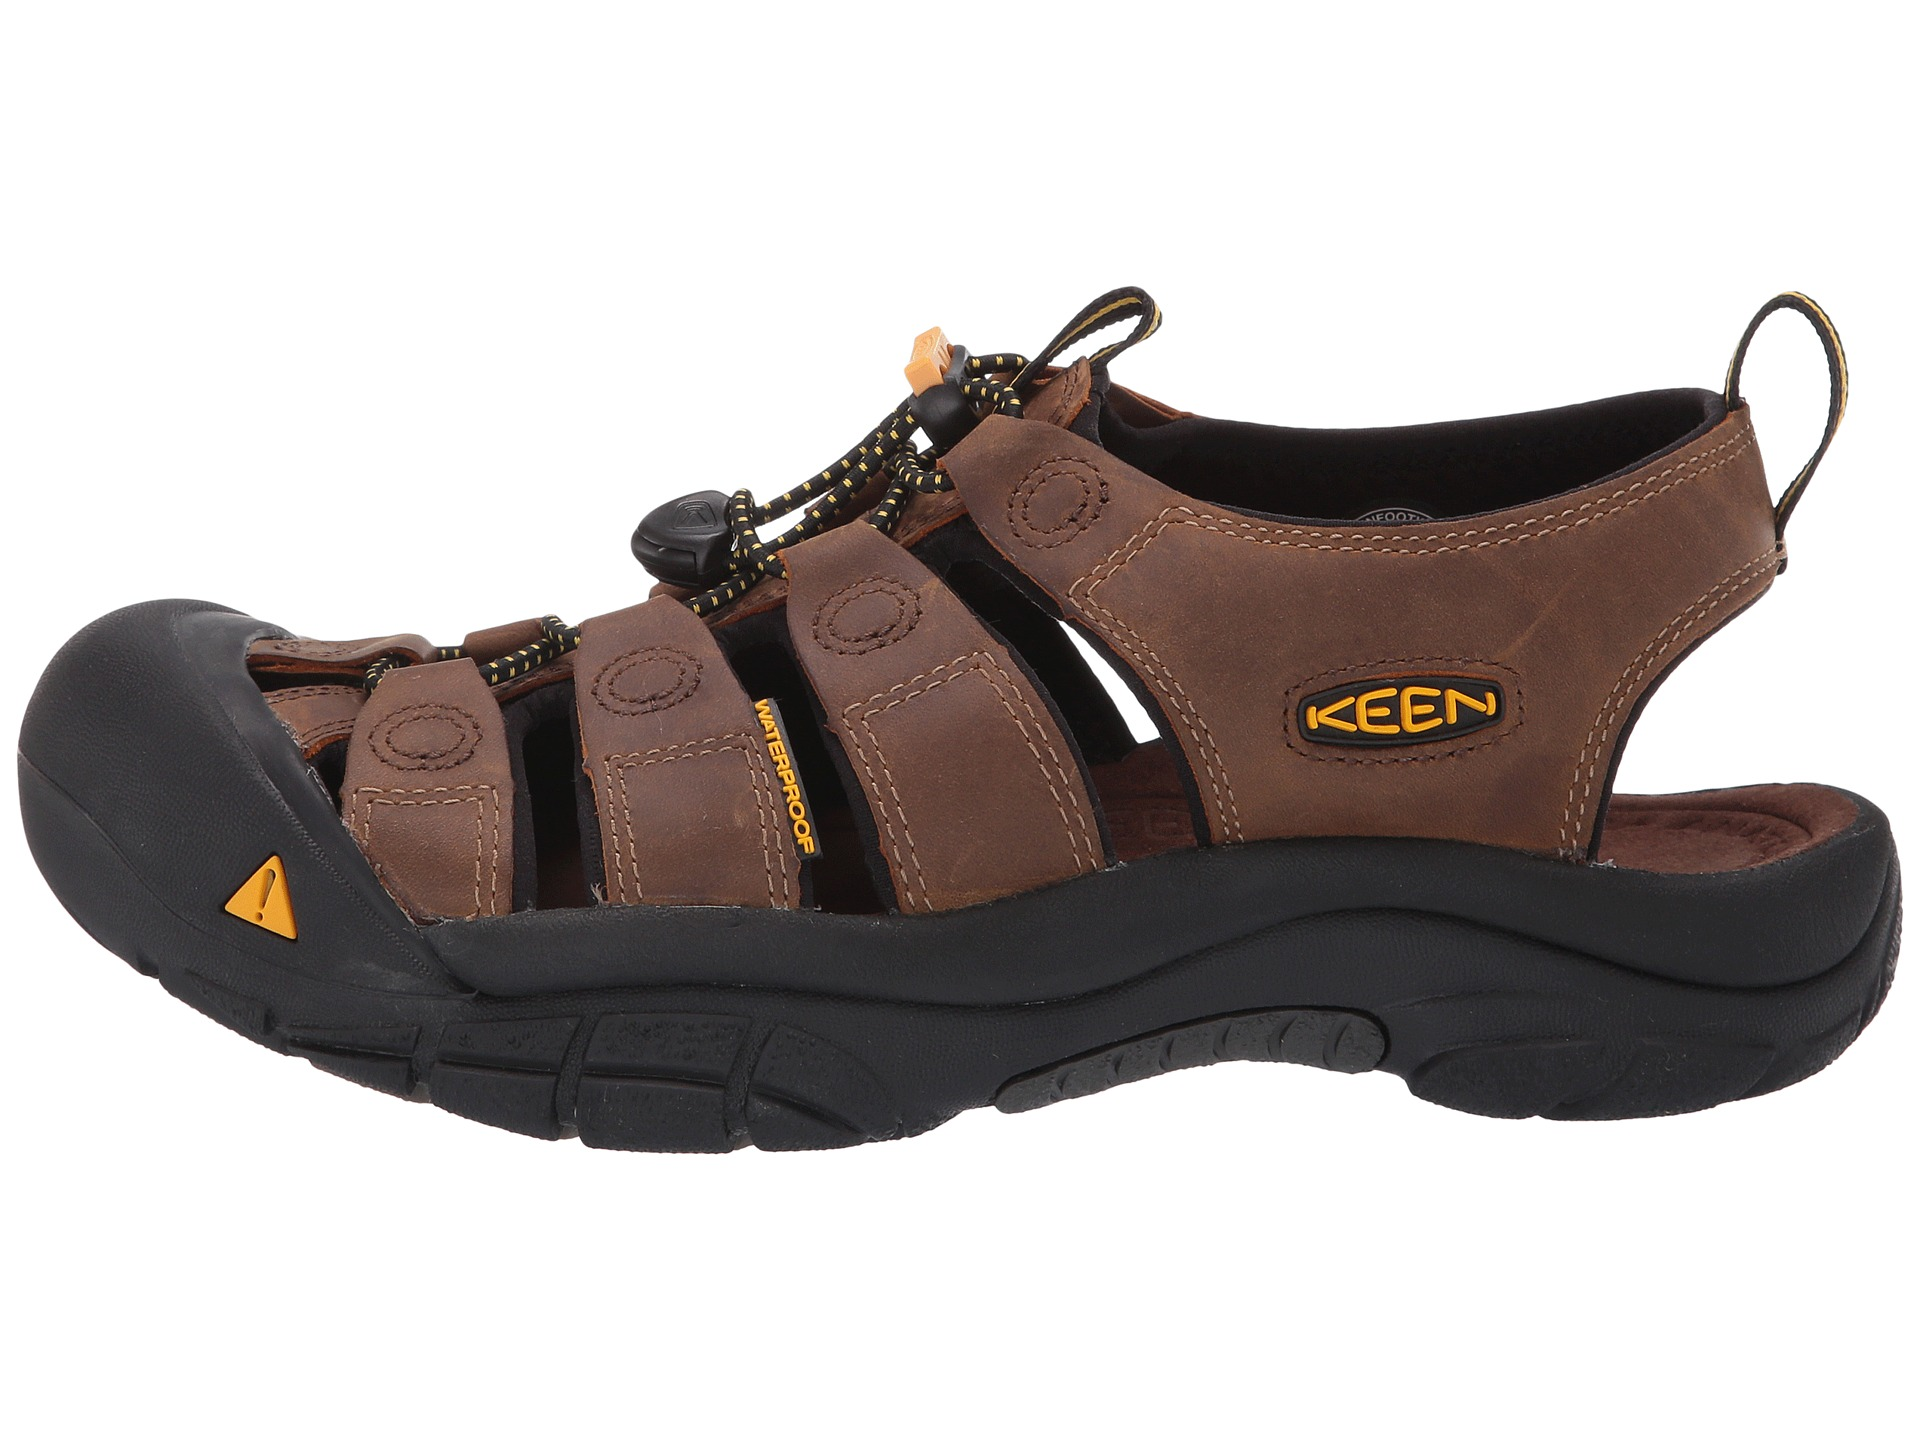 Casual shoes and sandal styles with performance influences, KEEN offers true comfort features. Each KEEN style has metatomical and removable EVA footbeds for cushioning and support, compression-molded EVA midsoles to absorb shock, non-marking carbon rubber outsoles for superior traction, and waterproof leather uppers to protect feet.